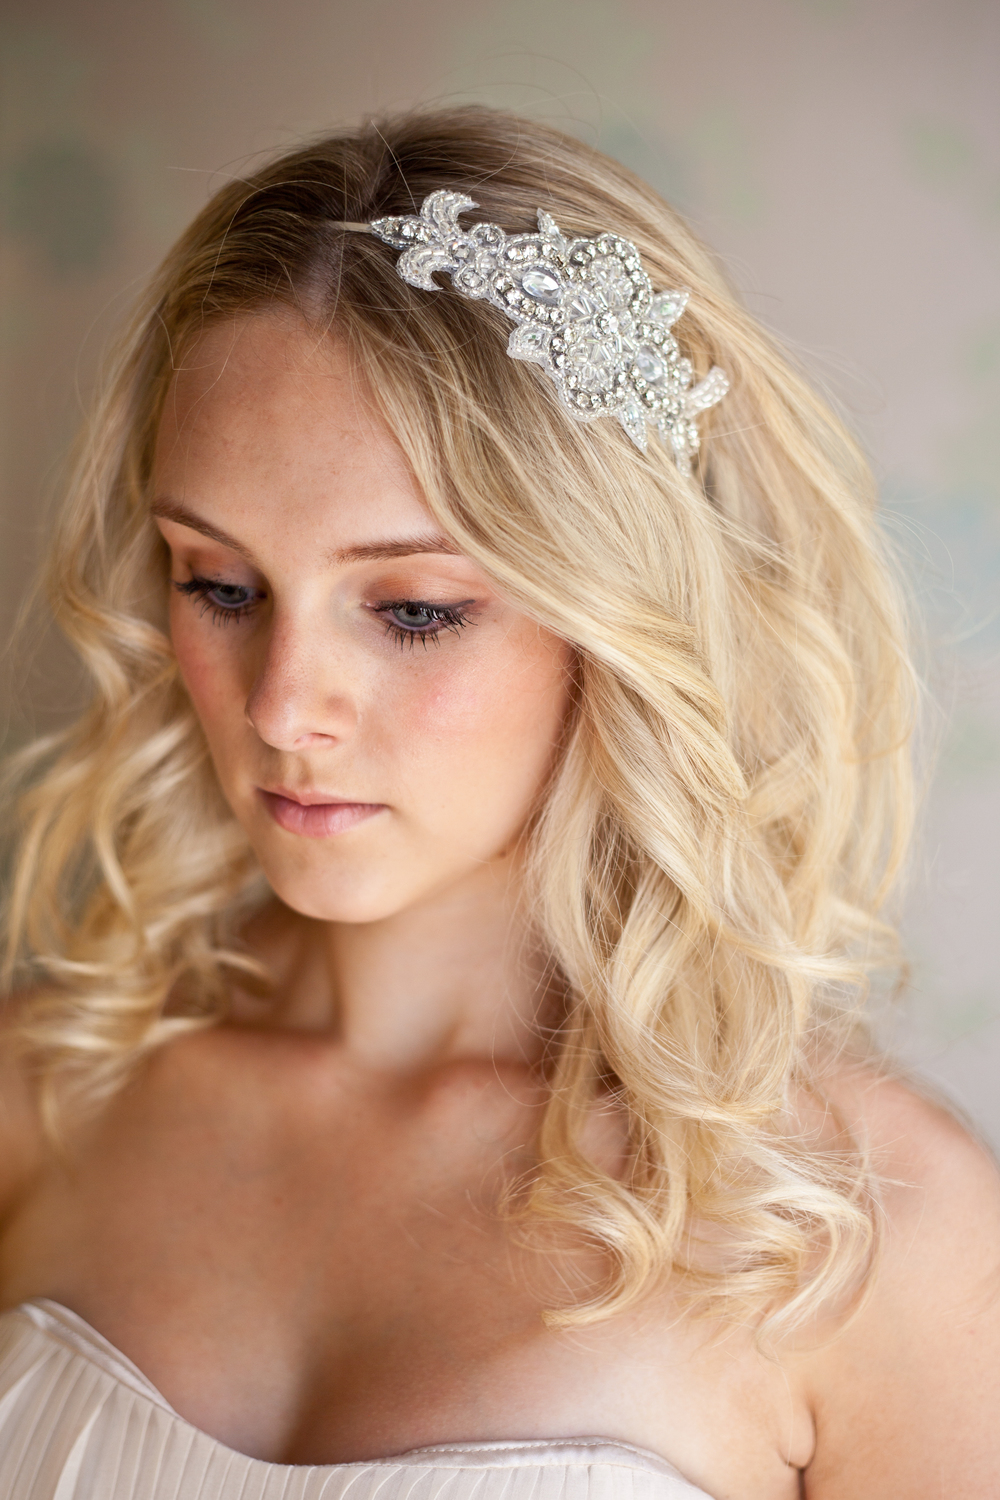 Lovehair floral headbands-046.jpg